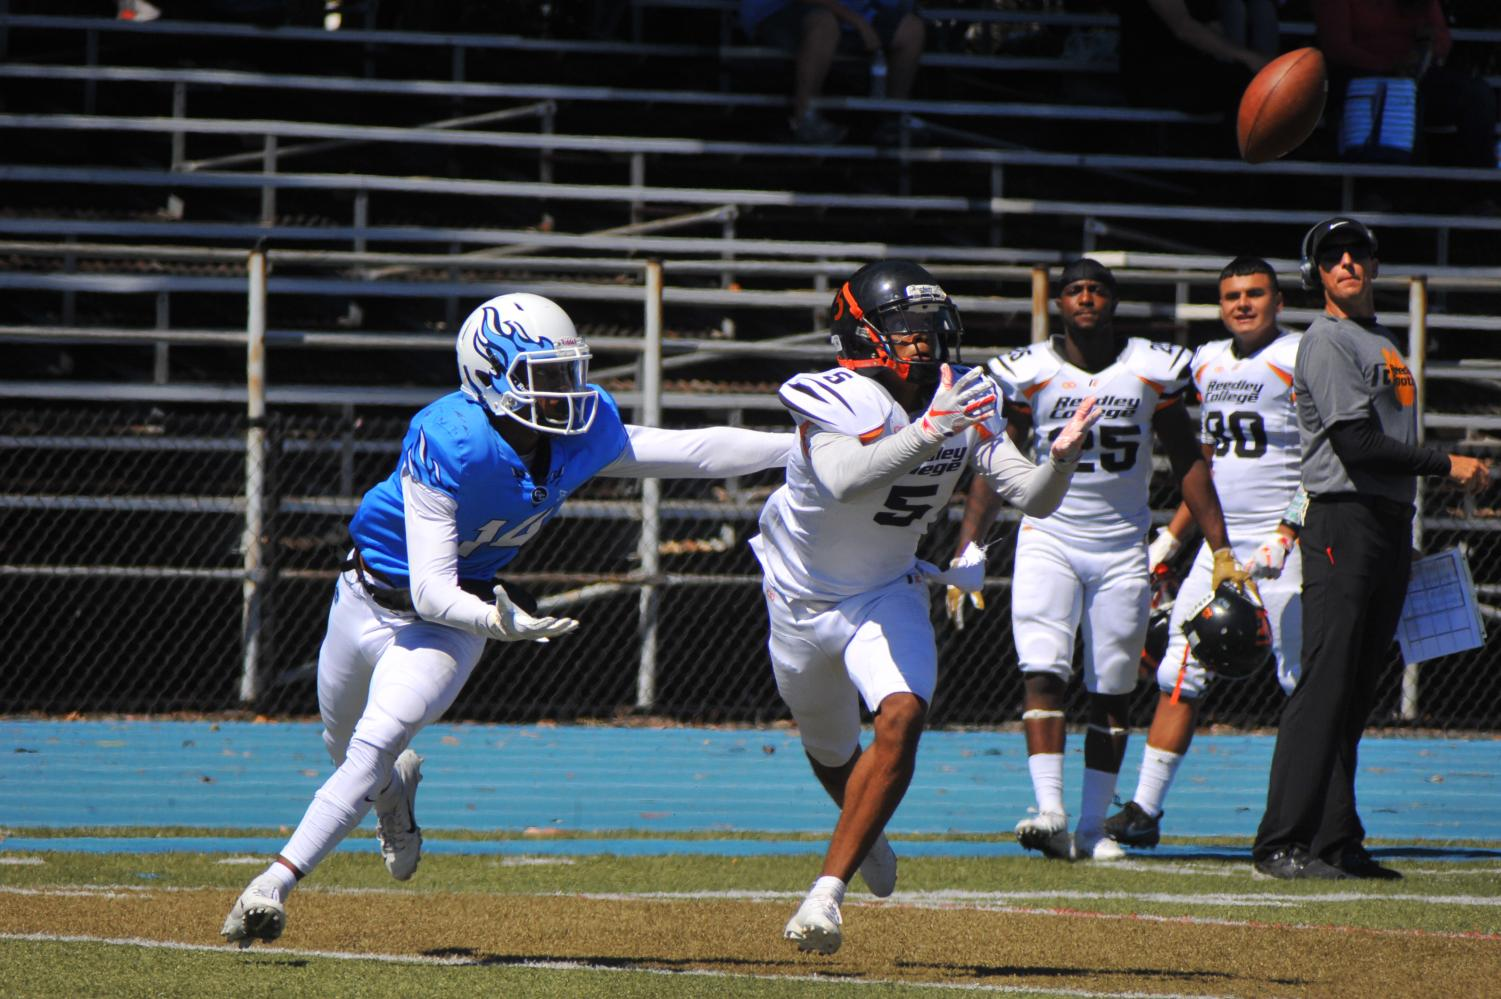 Reedley College Tiger cornerback James C. Day (right) intercepts Comet quarterback Jalen Tregle as wide receiver Kyree Jackson (left) looks on during Contra Costa College's 50-20 loss on Saturday.